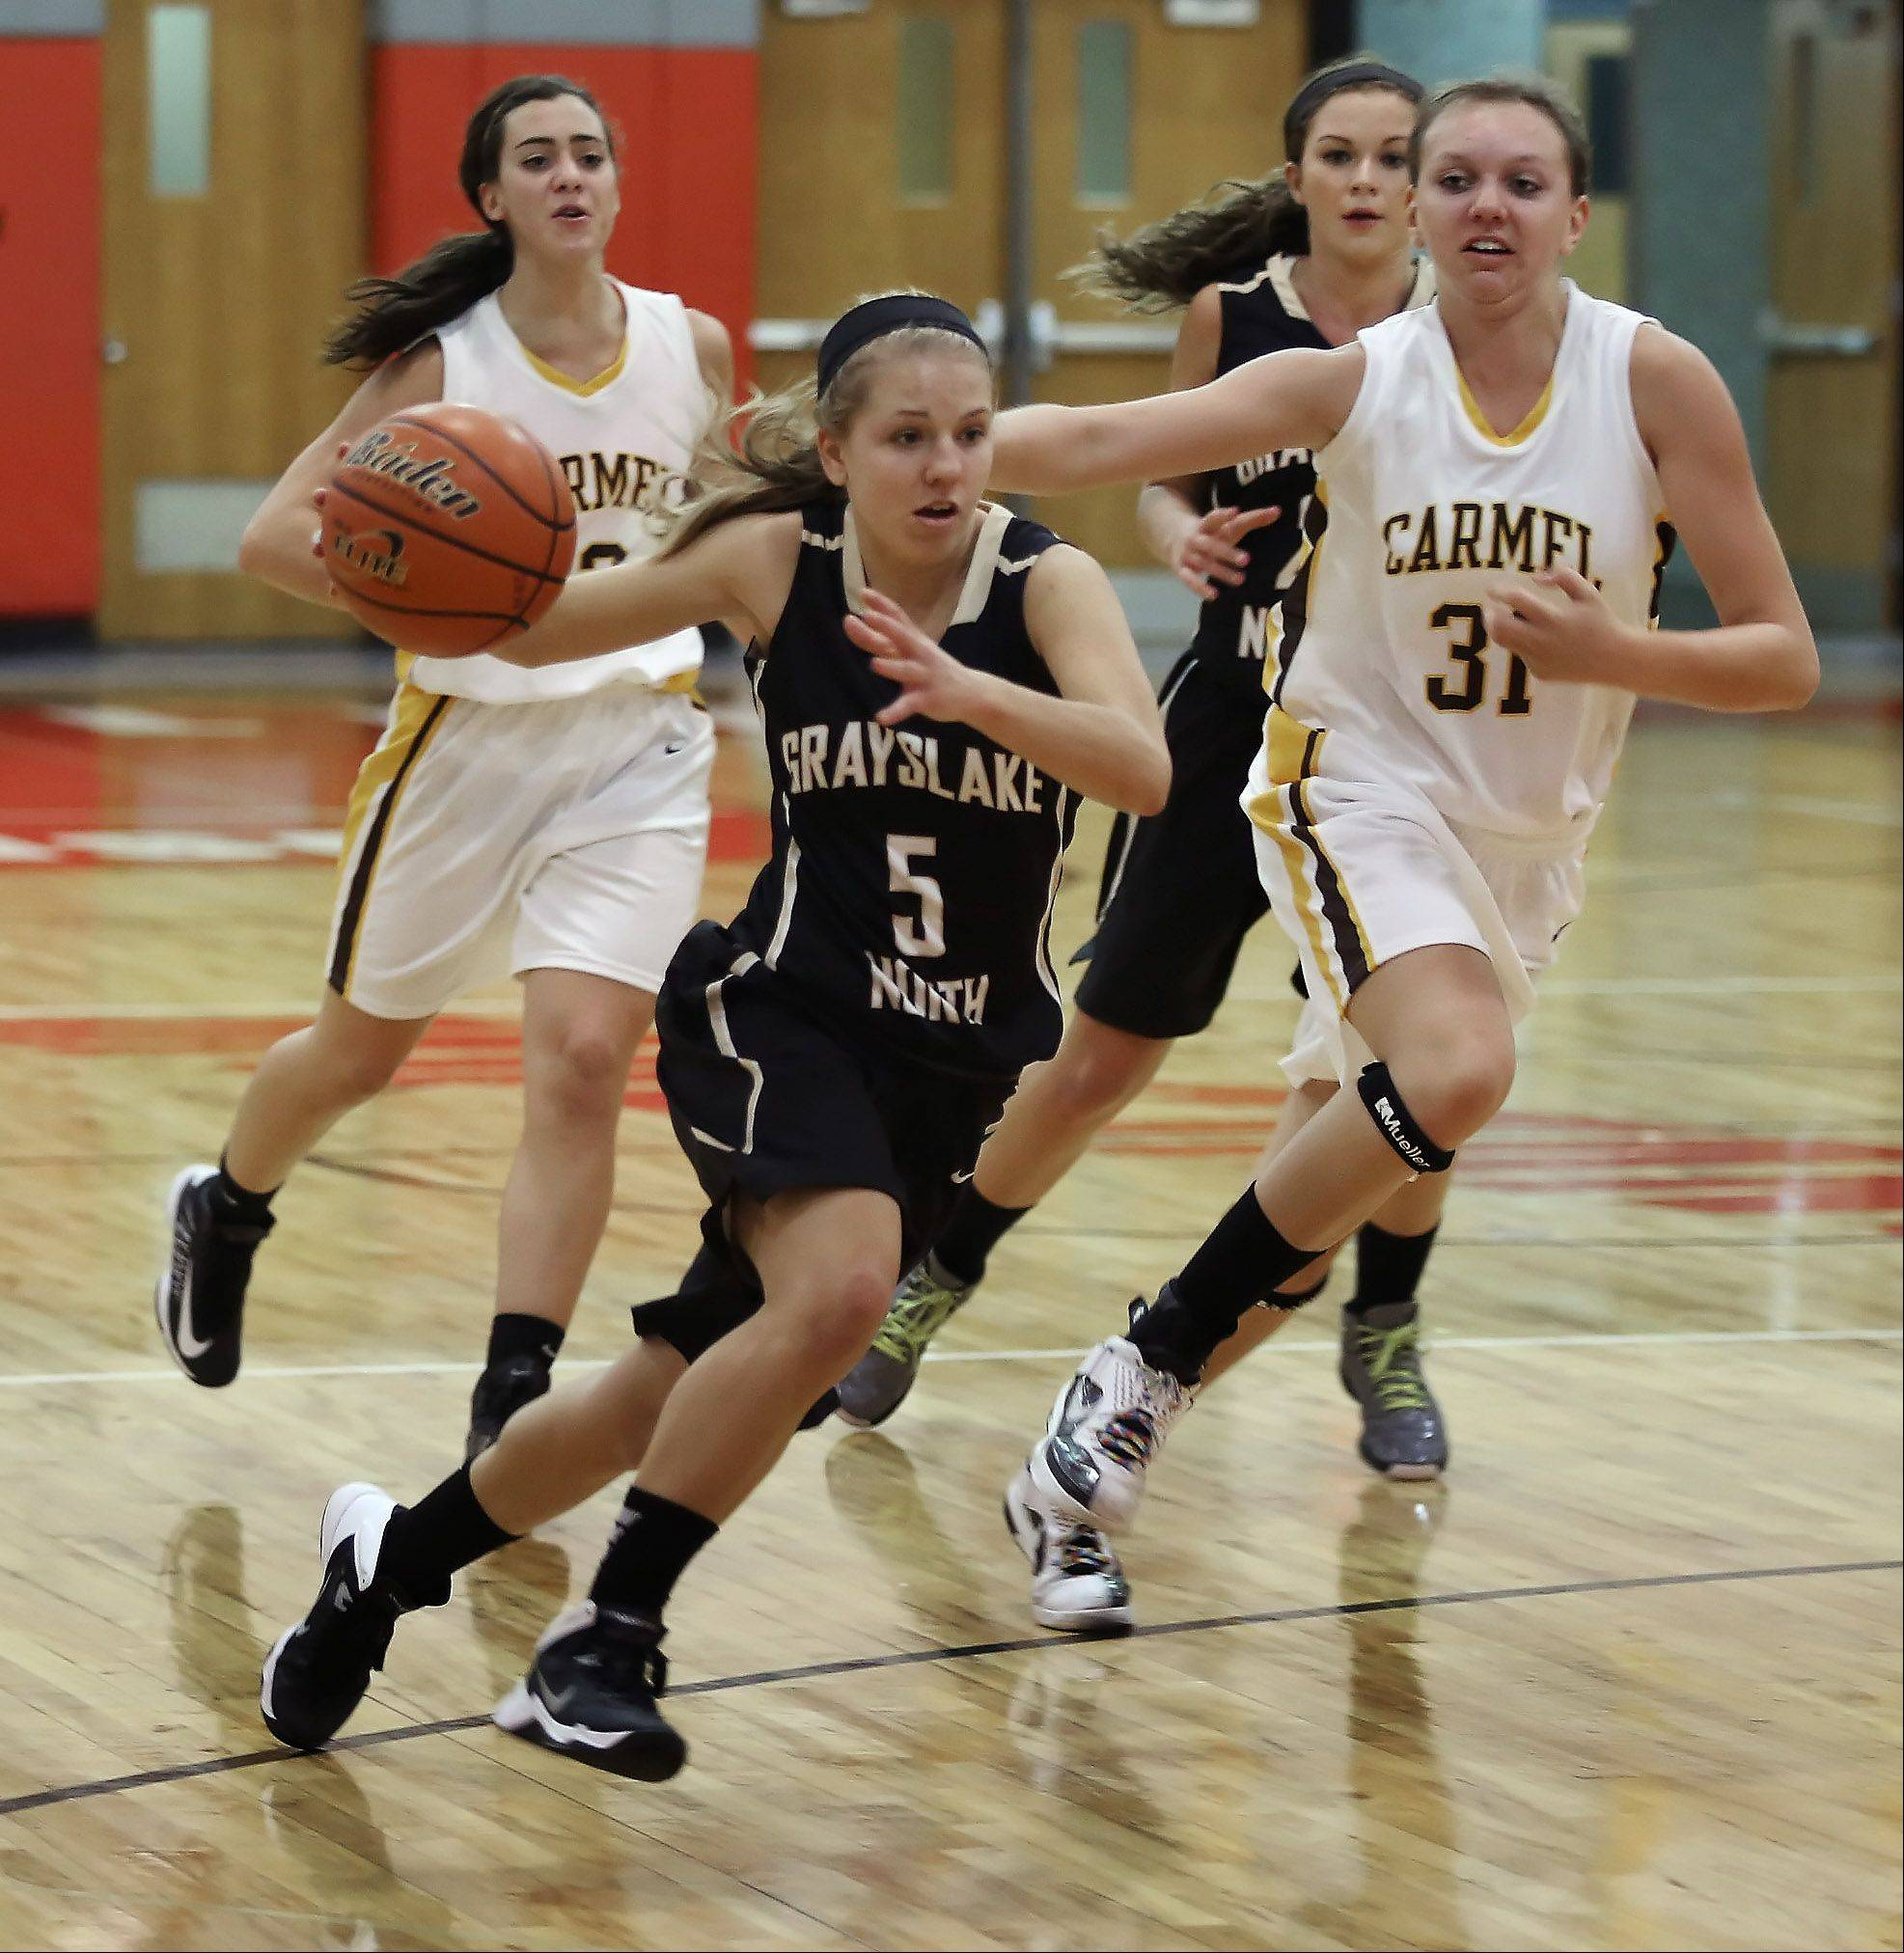 Grayslake North guard Kendall Detweiler races down the court against Carmel Catholic before the end of the third quarter Monday at the Mundelein High School Turkey Tournament. Carmel players Emily Casale, right, and Kathleen Felicelli are following behind.